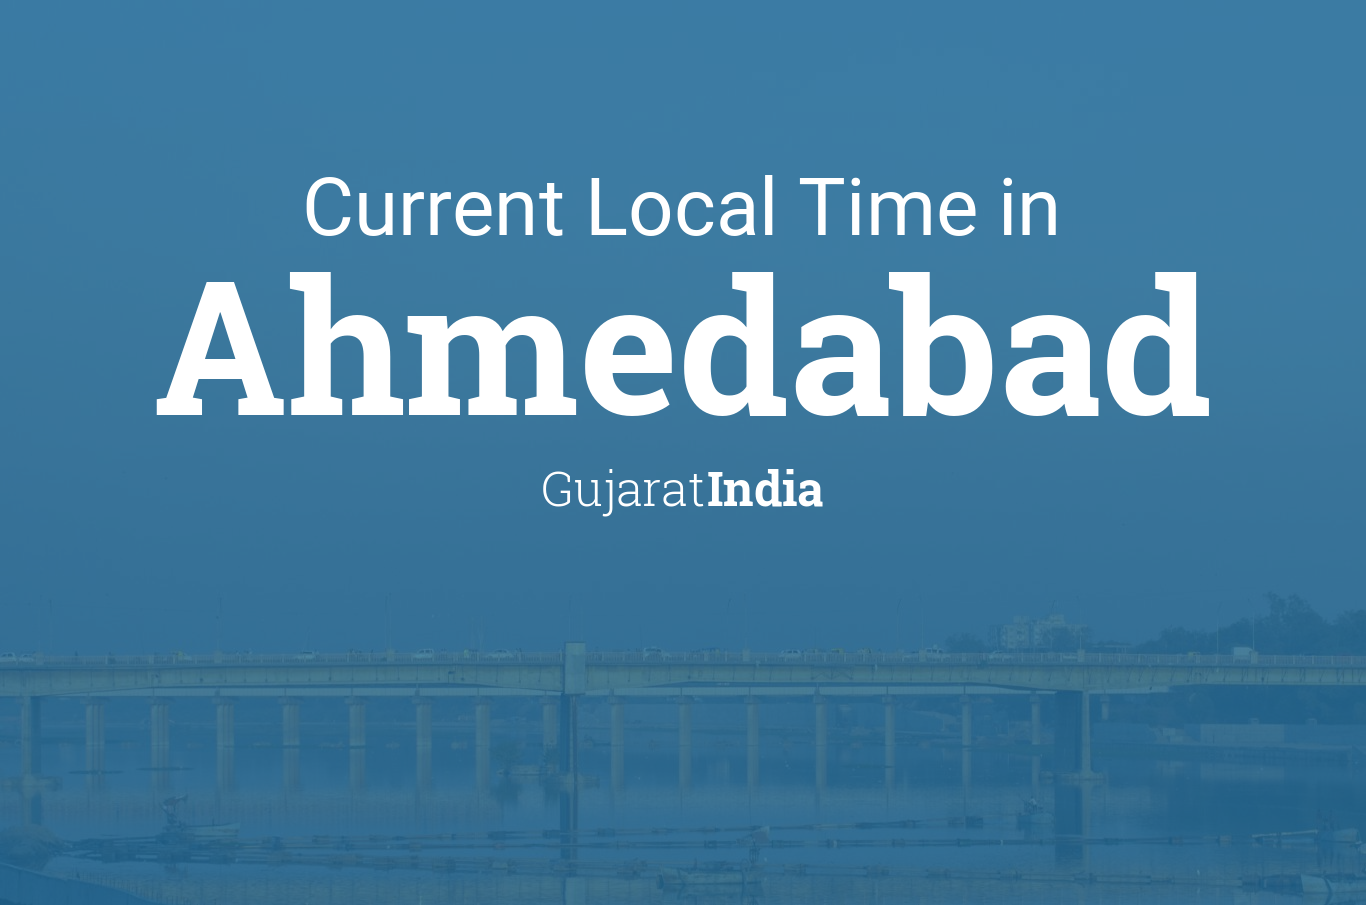 Current Local Time in Ahmedabad, Gujarat, India